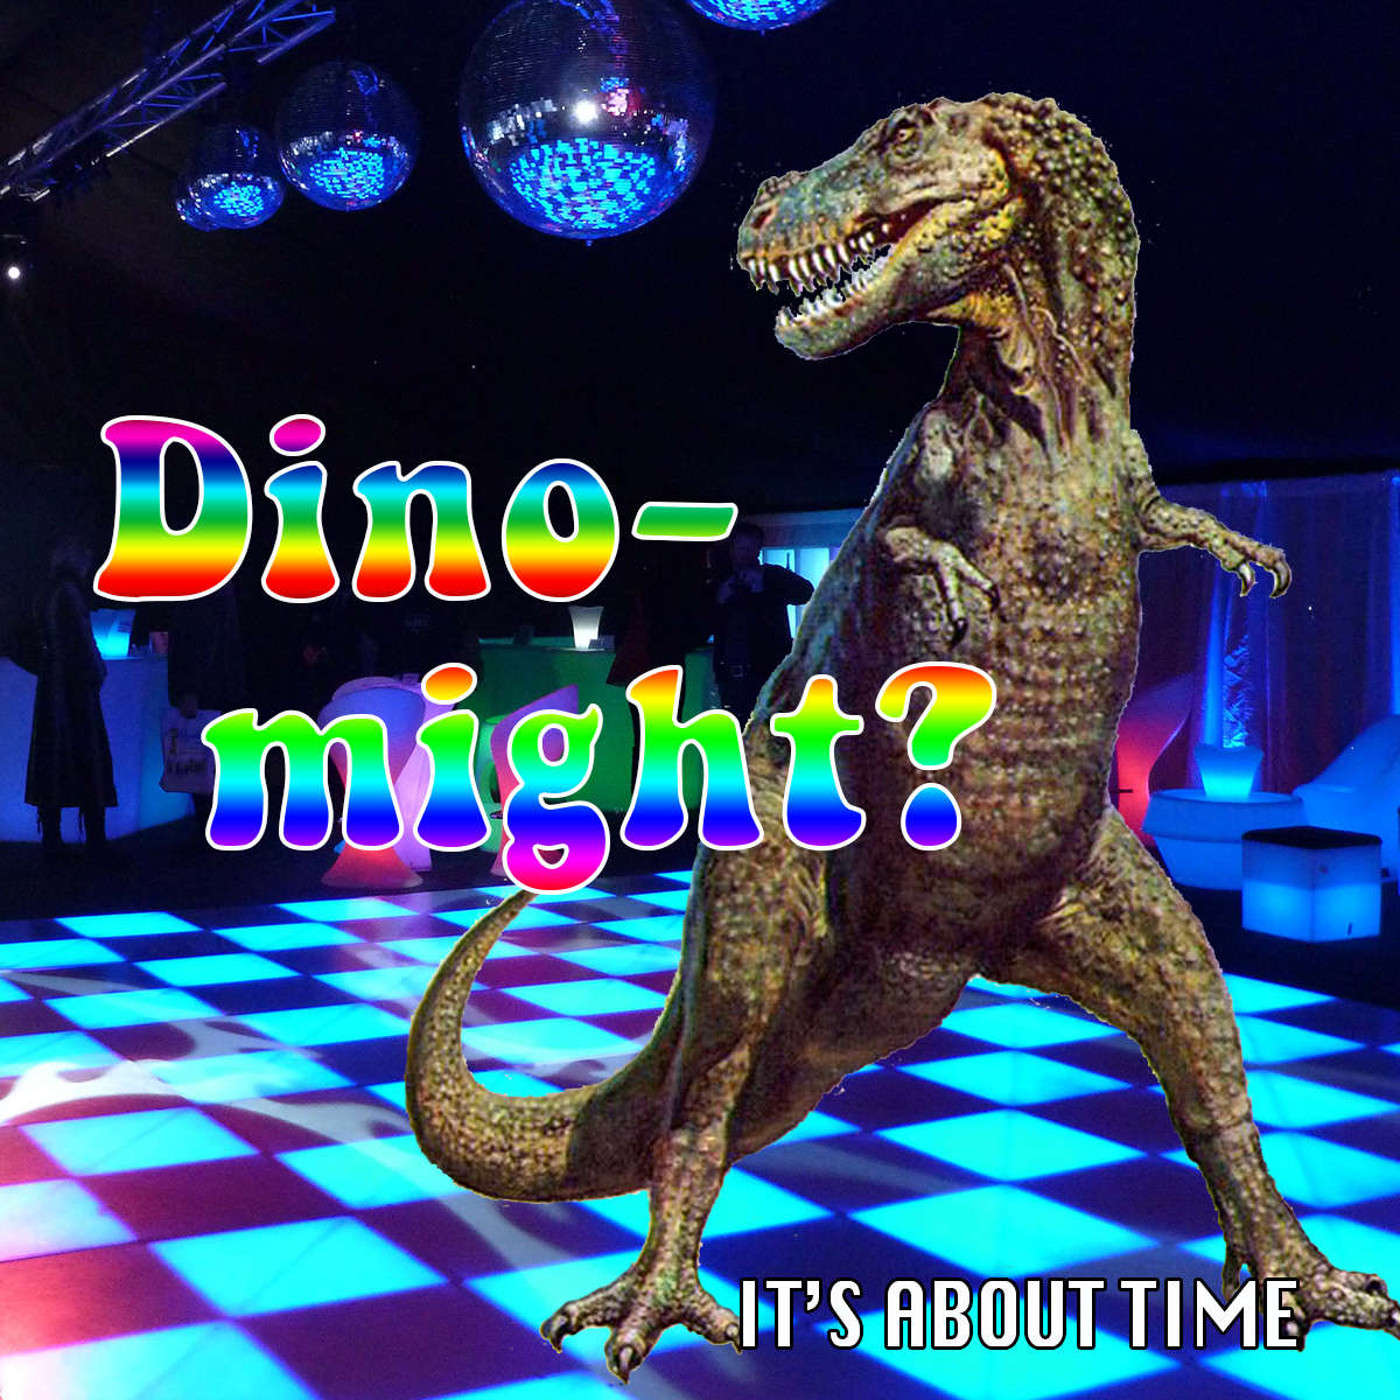 S01E09 - Dino Might? Disco and dinosaurs are featured in this sci-fi comedy episode